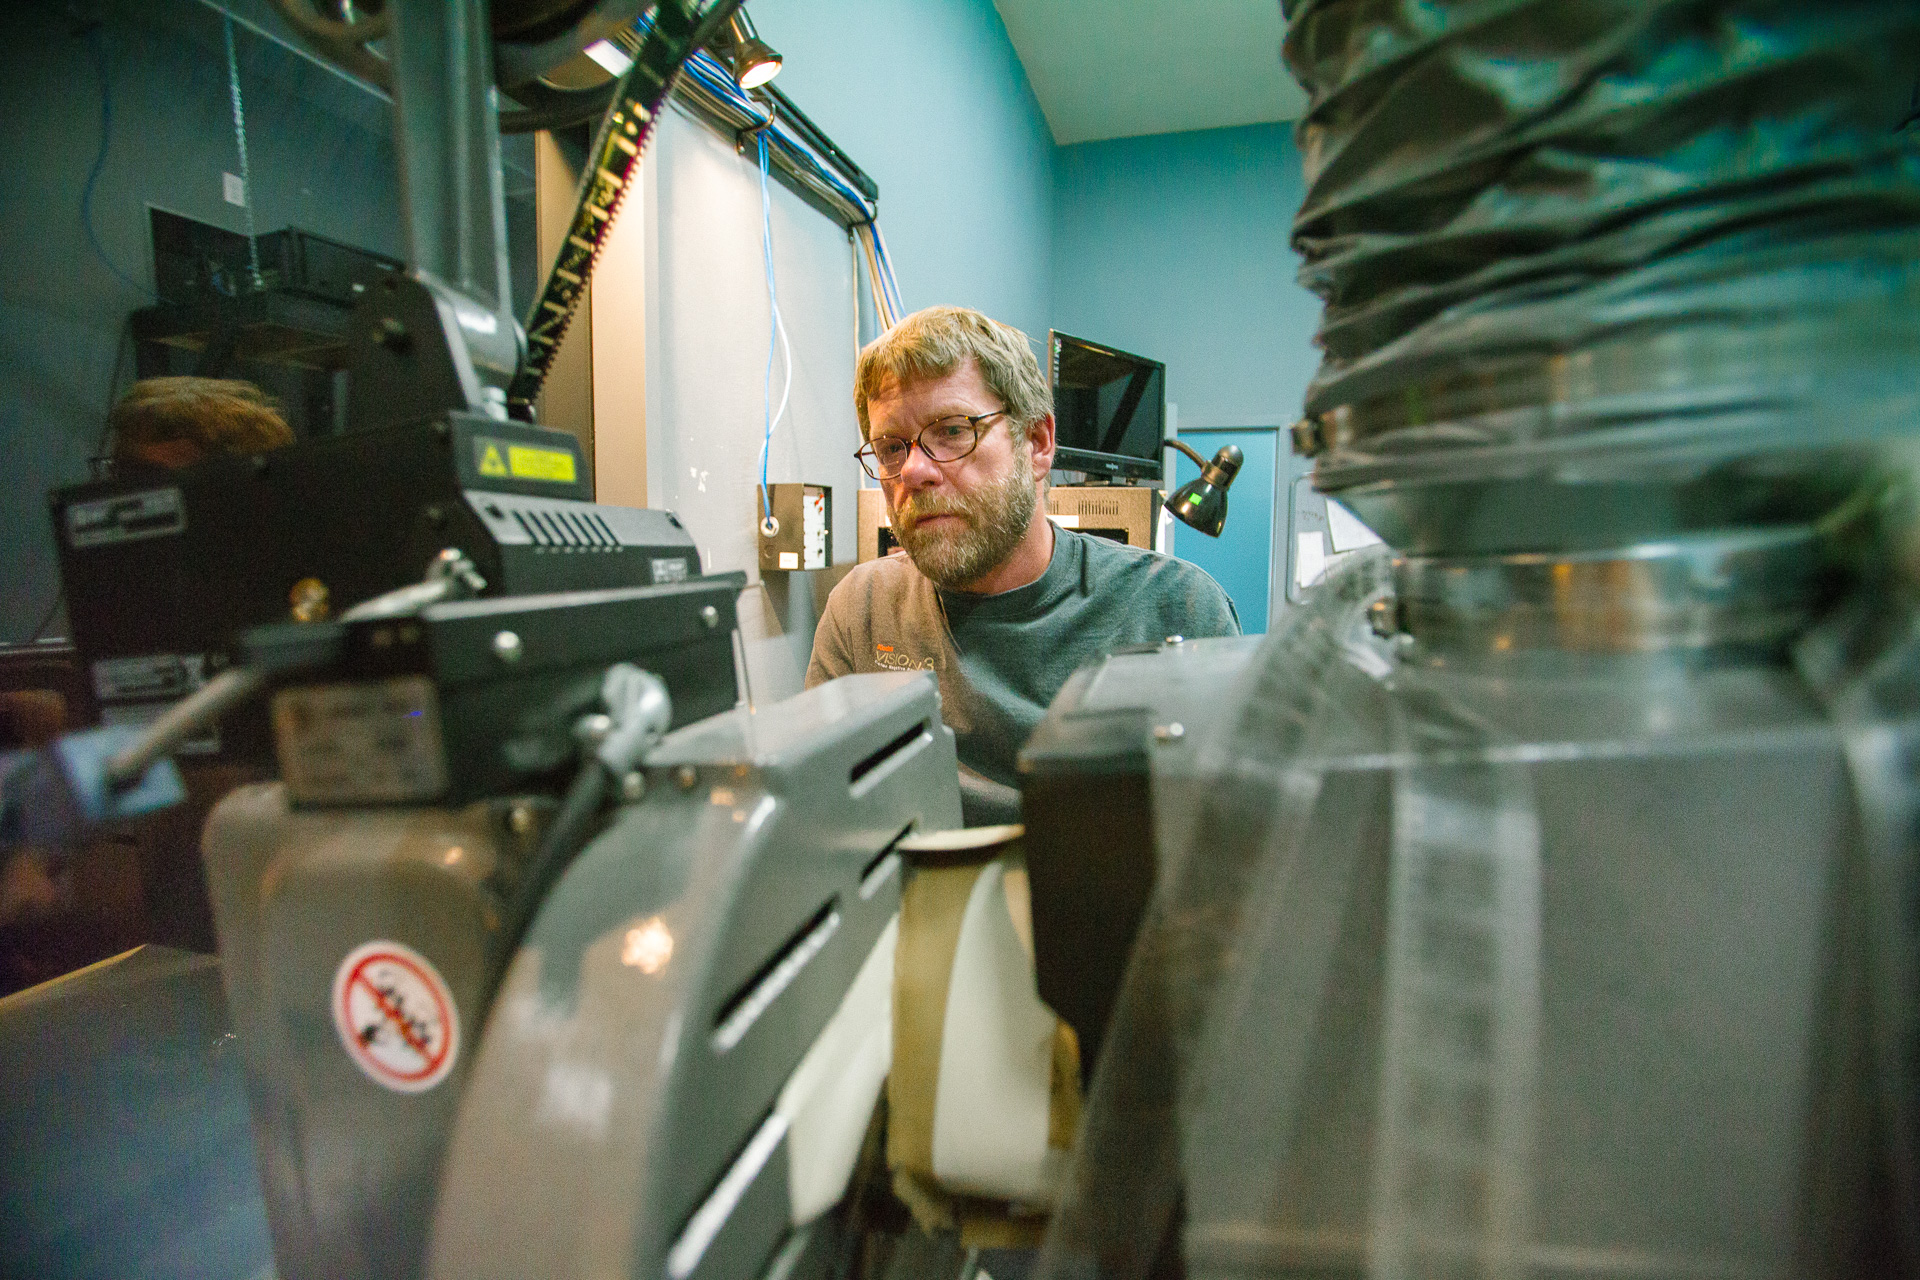 S.I.F.F Projectionist Larry Price in his projection room